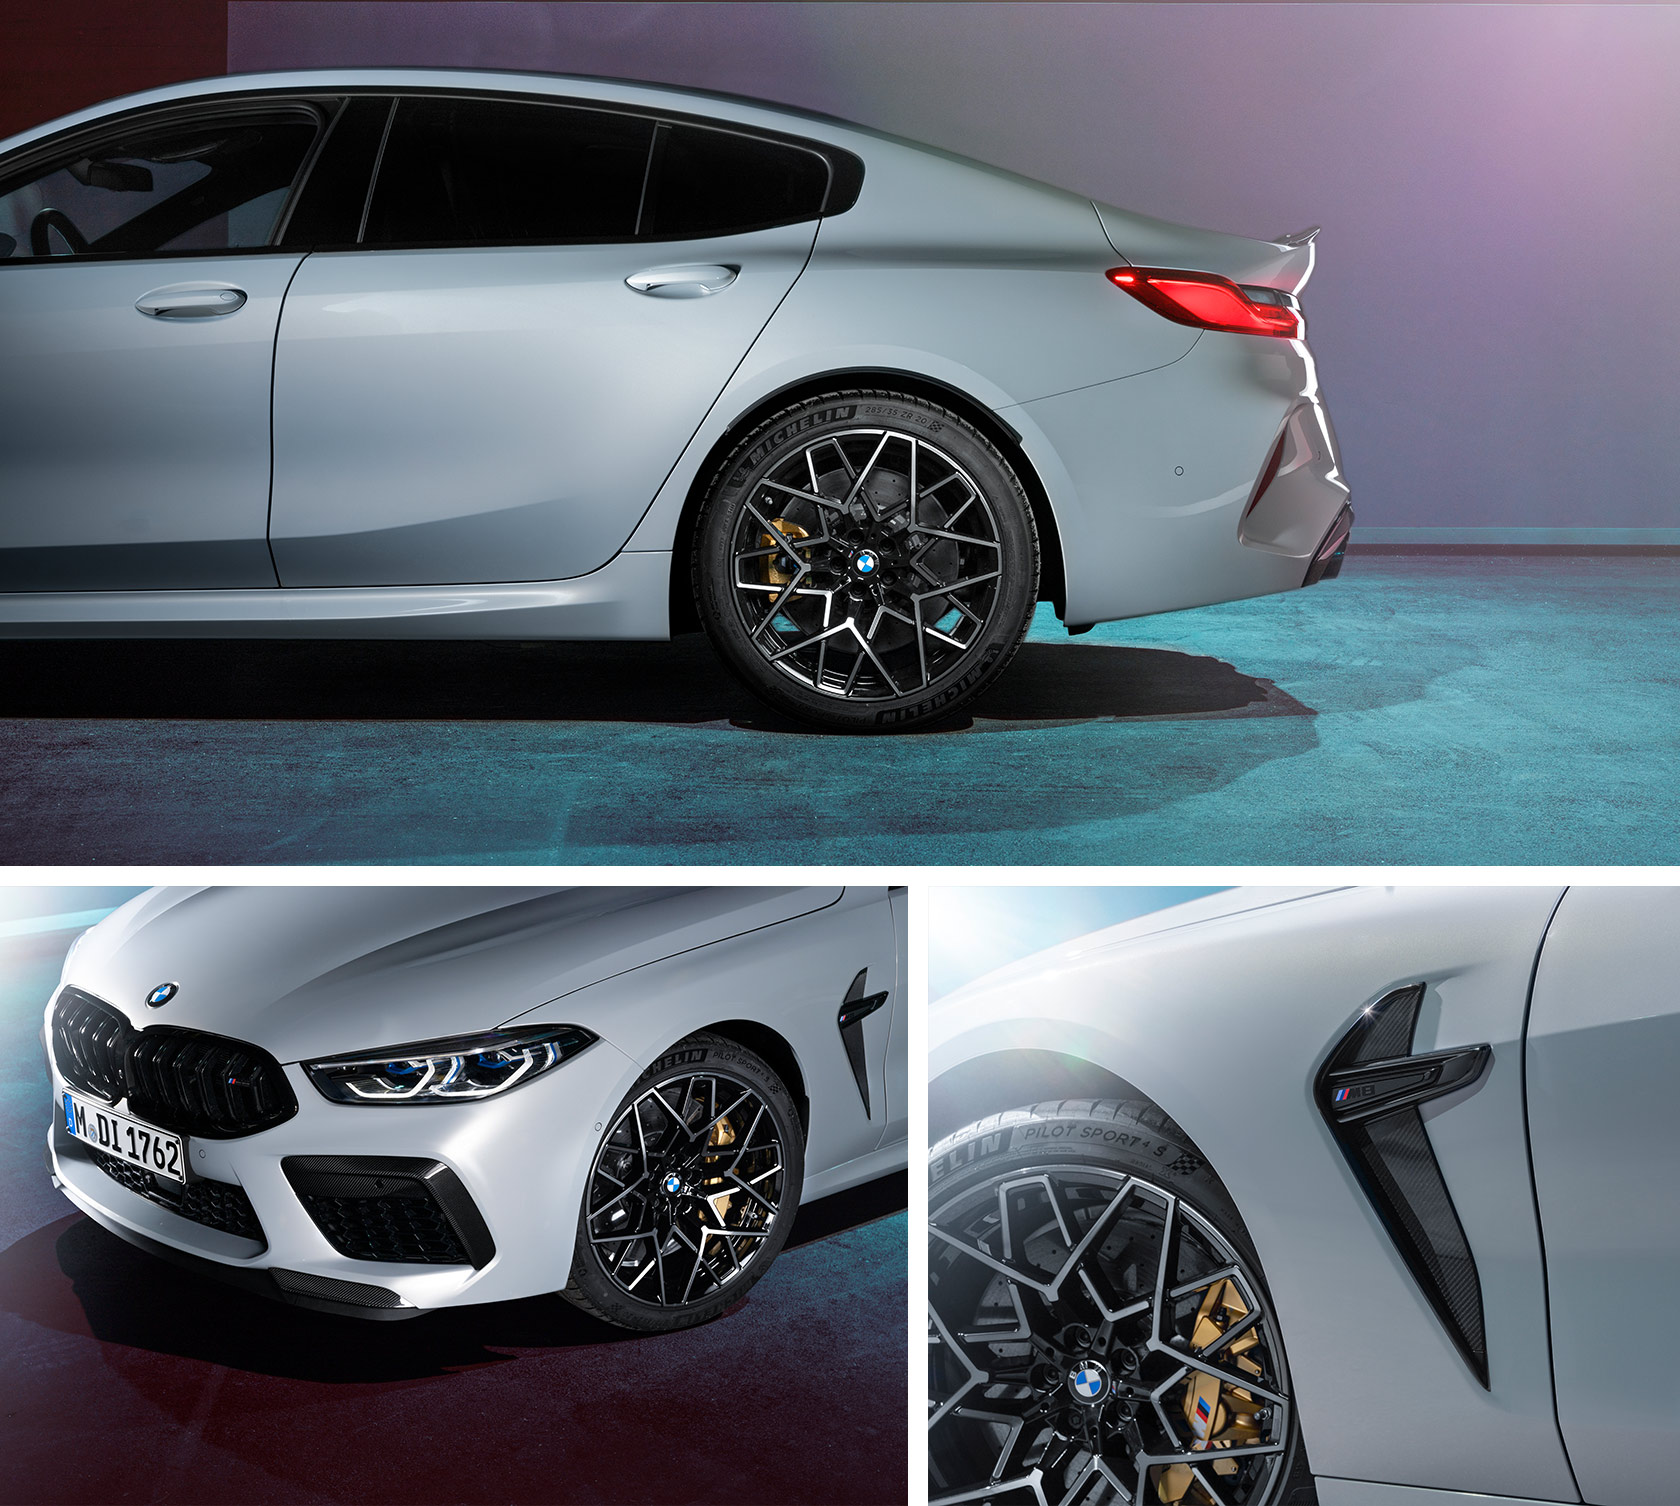 The Bmw M8 Competition Gran Coupé In Hockenheim Silver Metallic